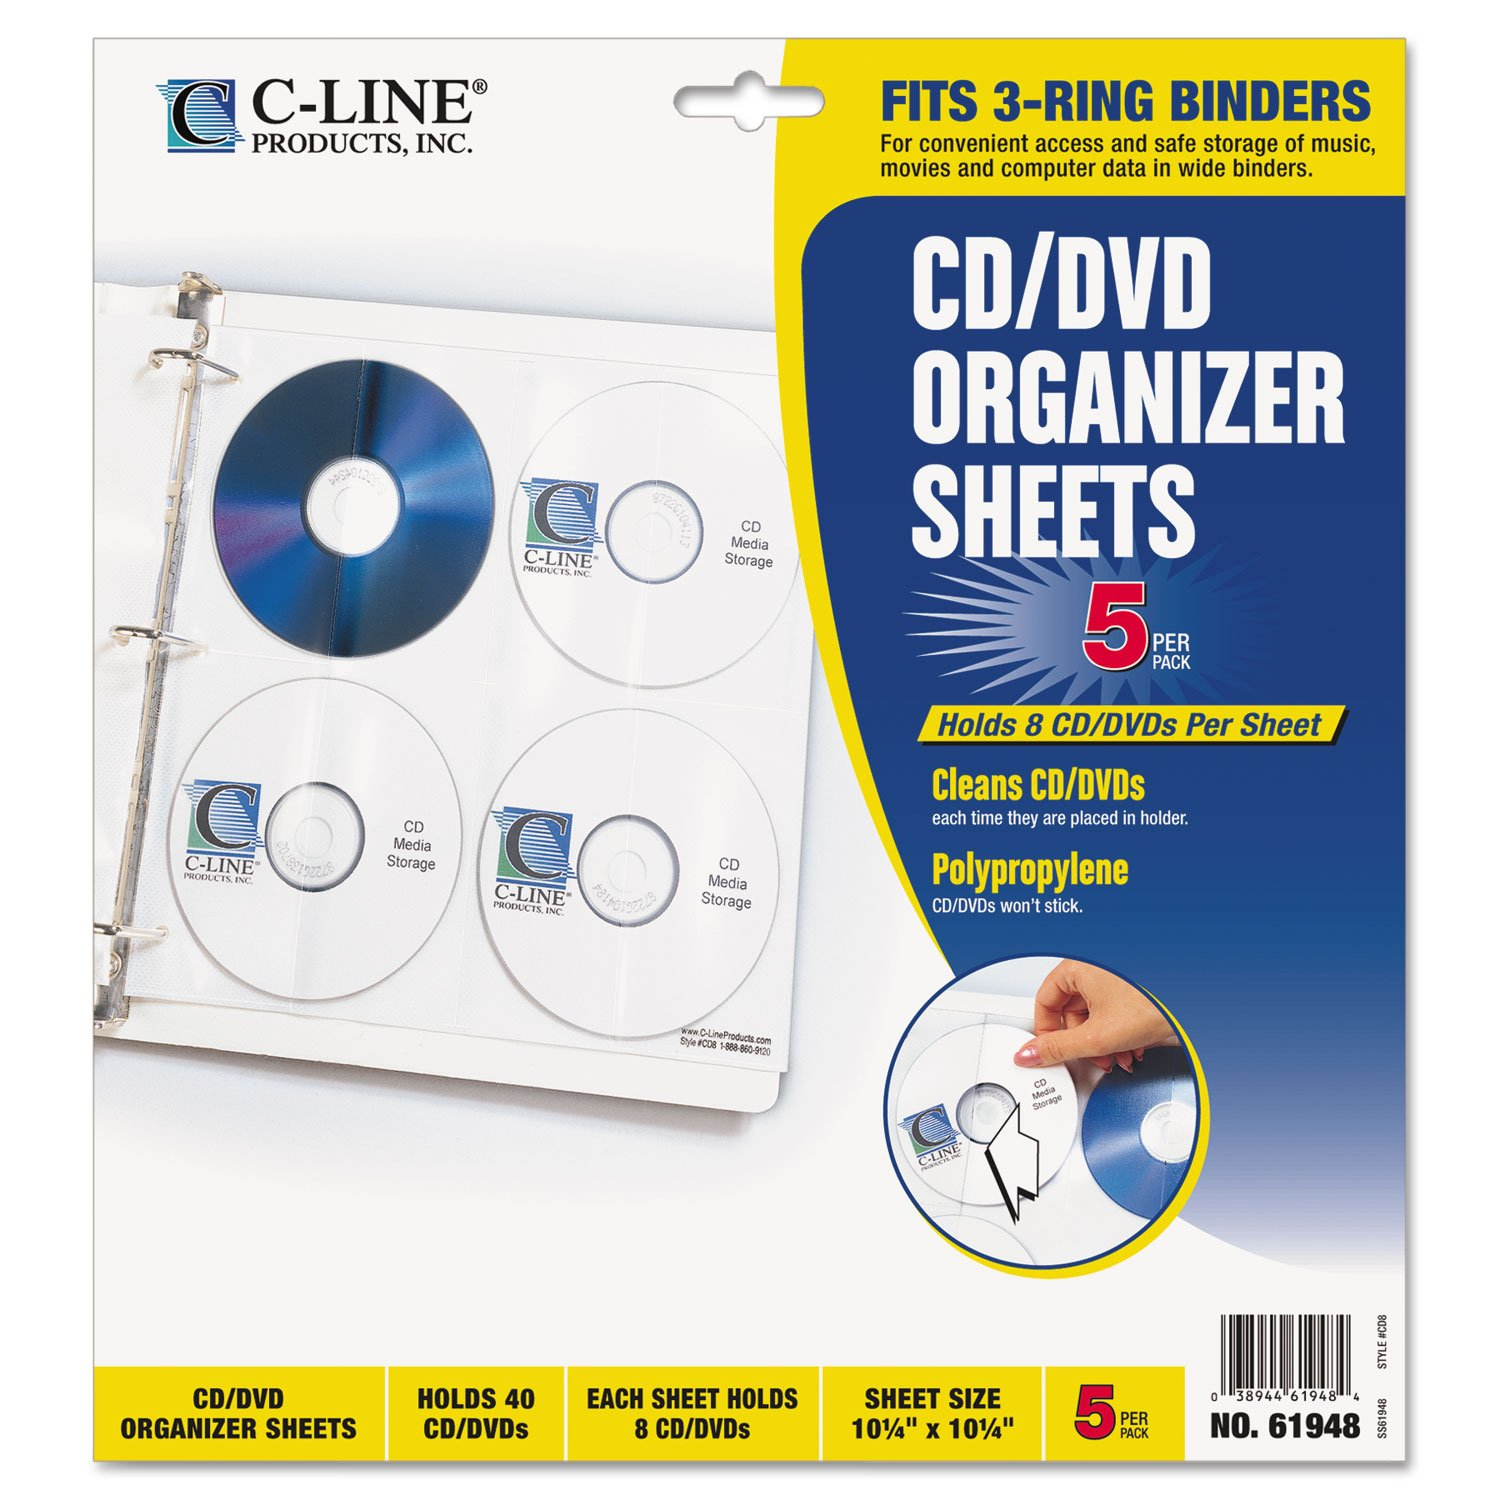 C-Line Deluxe CD Ring Binder Storage Pages for Standard 3-Ring Binders, Stores 8 CDs, 11.3 x 10.4 Inches, 5 Pages per Pack (61948)